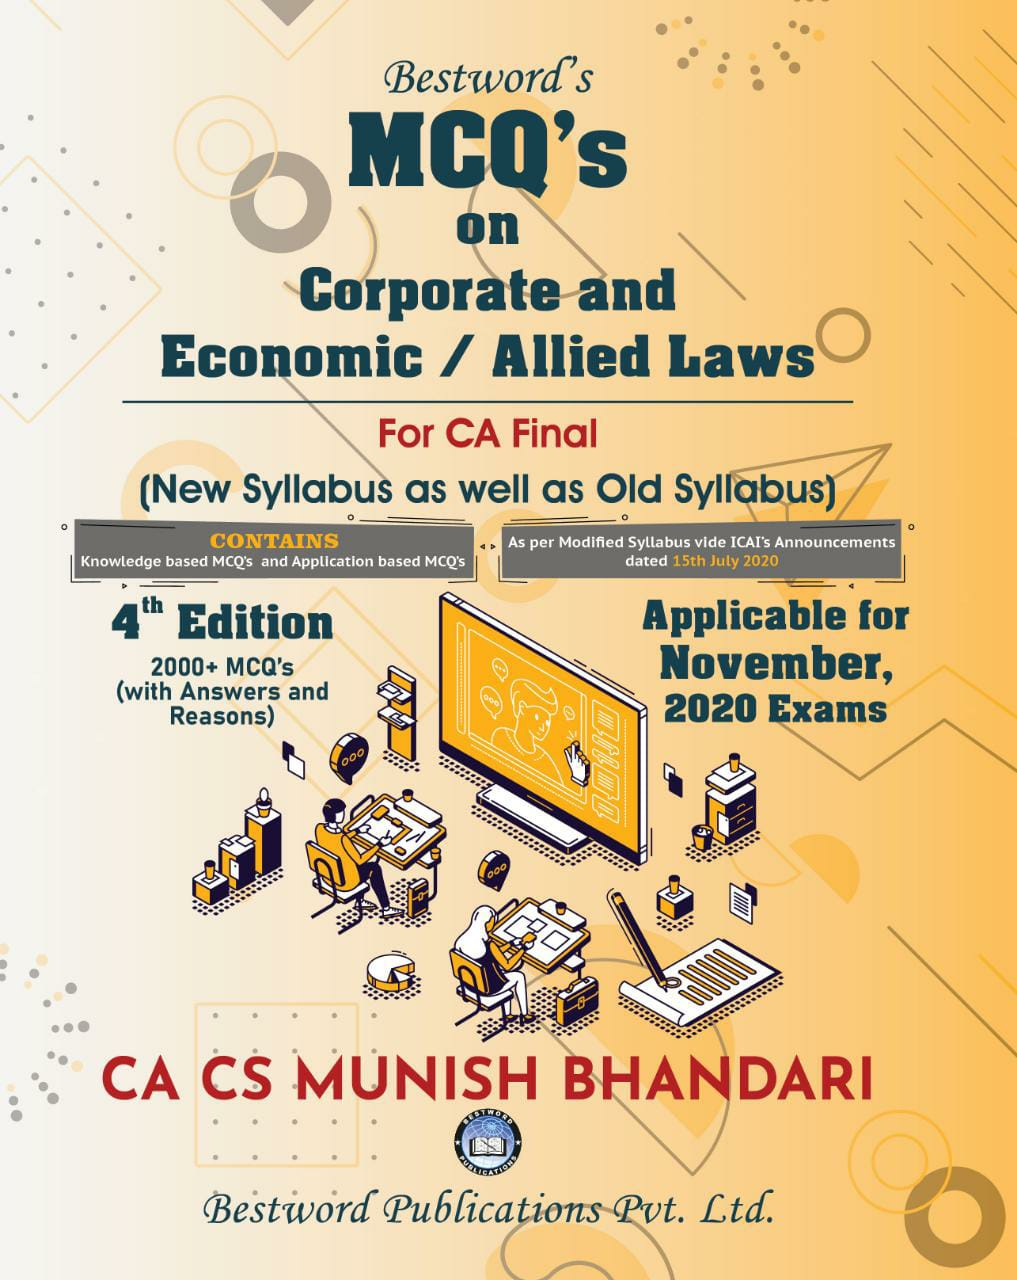 Bestword CA Final MCQs on Corporate and Allied Laws and Economic Laws Old and New Syllabus By Munish Bhandari Applicable for Nov 2020 Exam